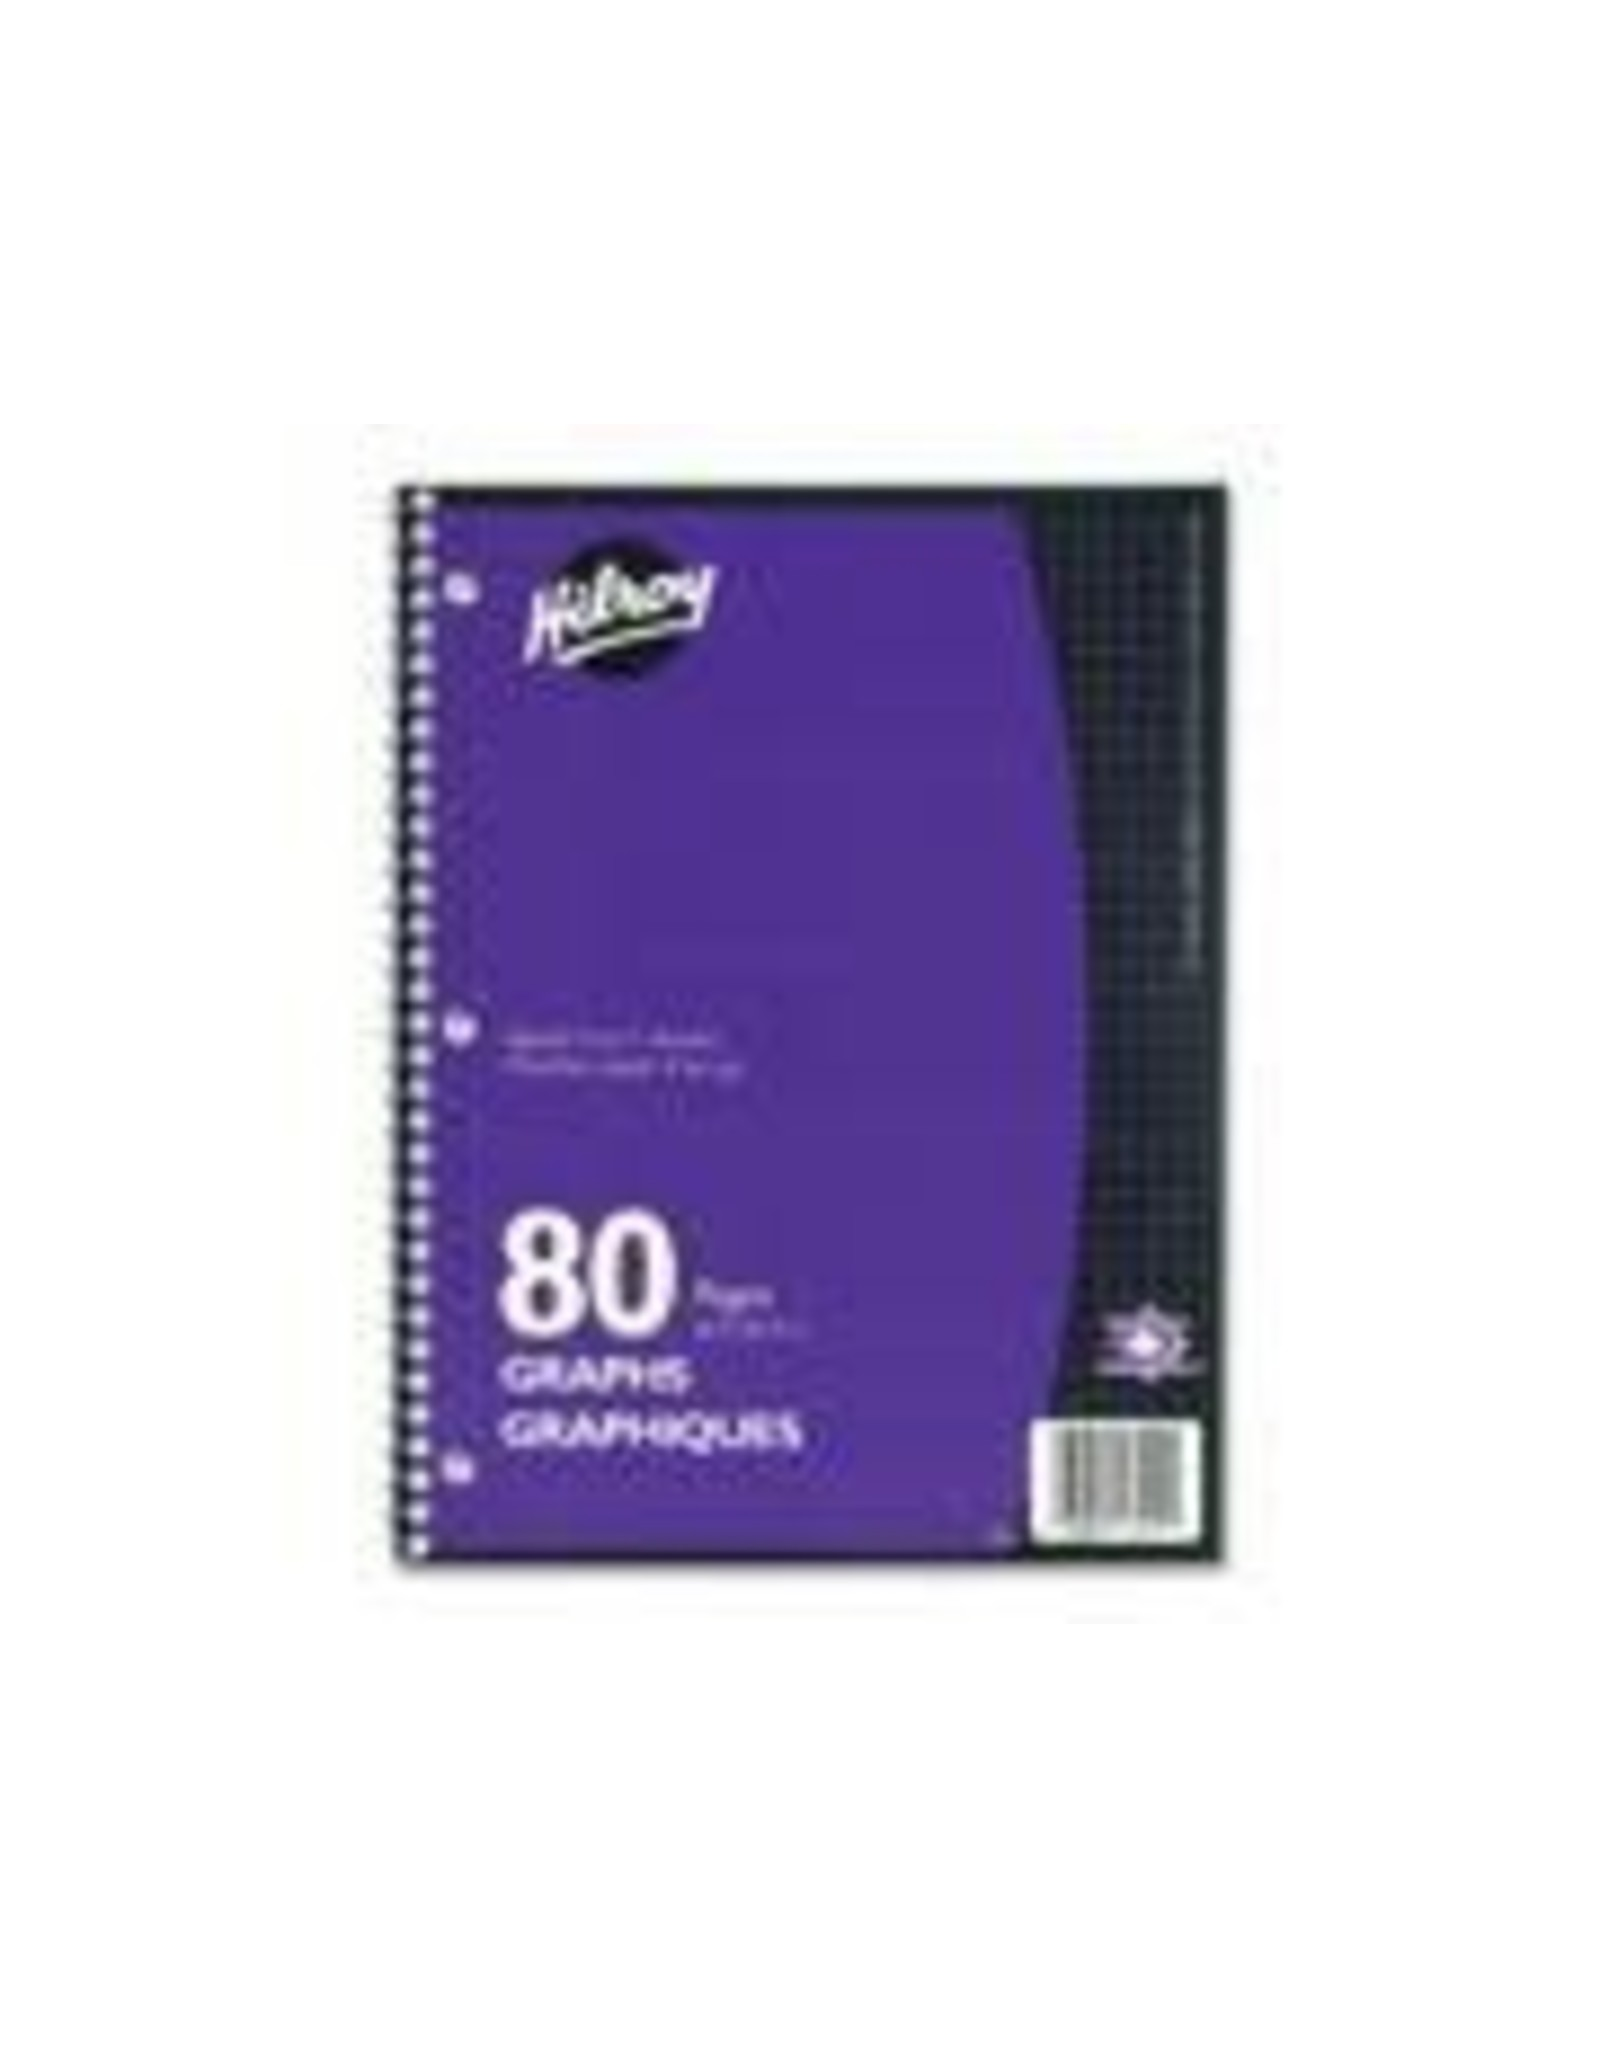 Hilroy NOTEBOOK-COIL, GRAPH 4/INCH 10.5X8 80 PAGE, VIOLET COVER